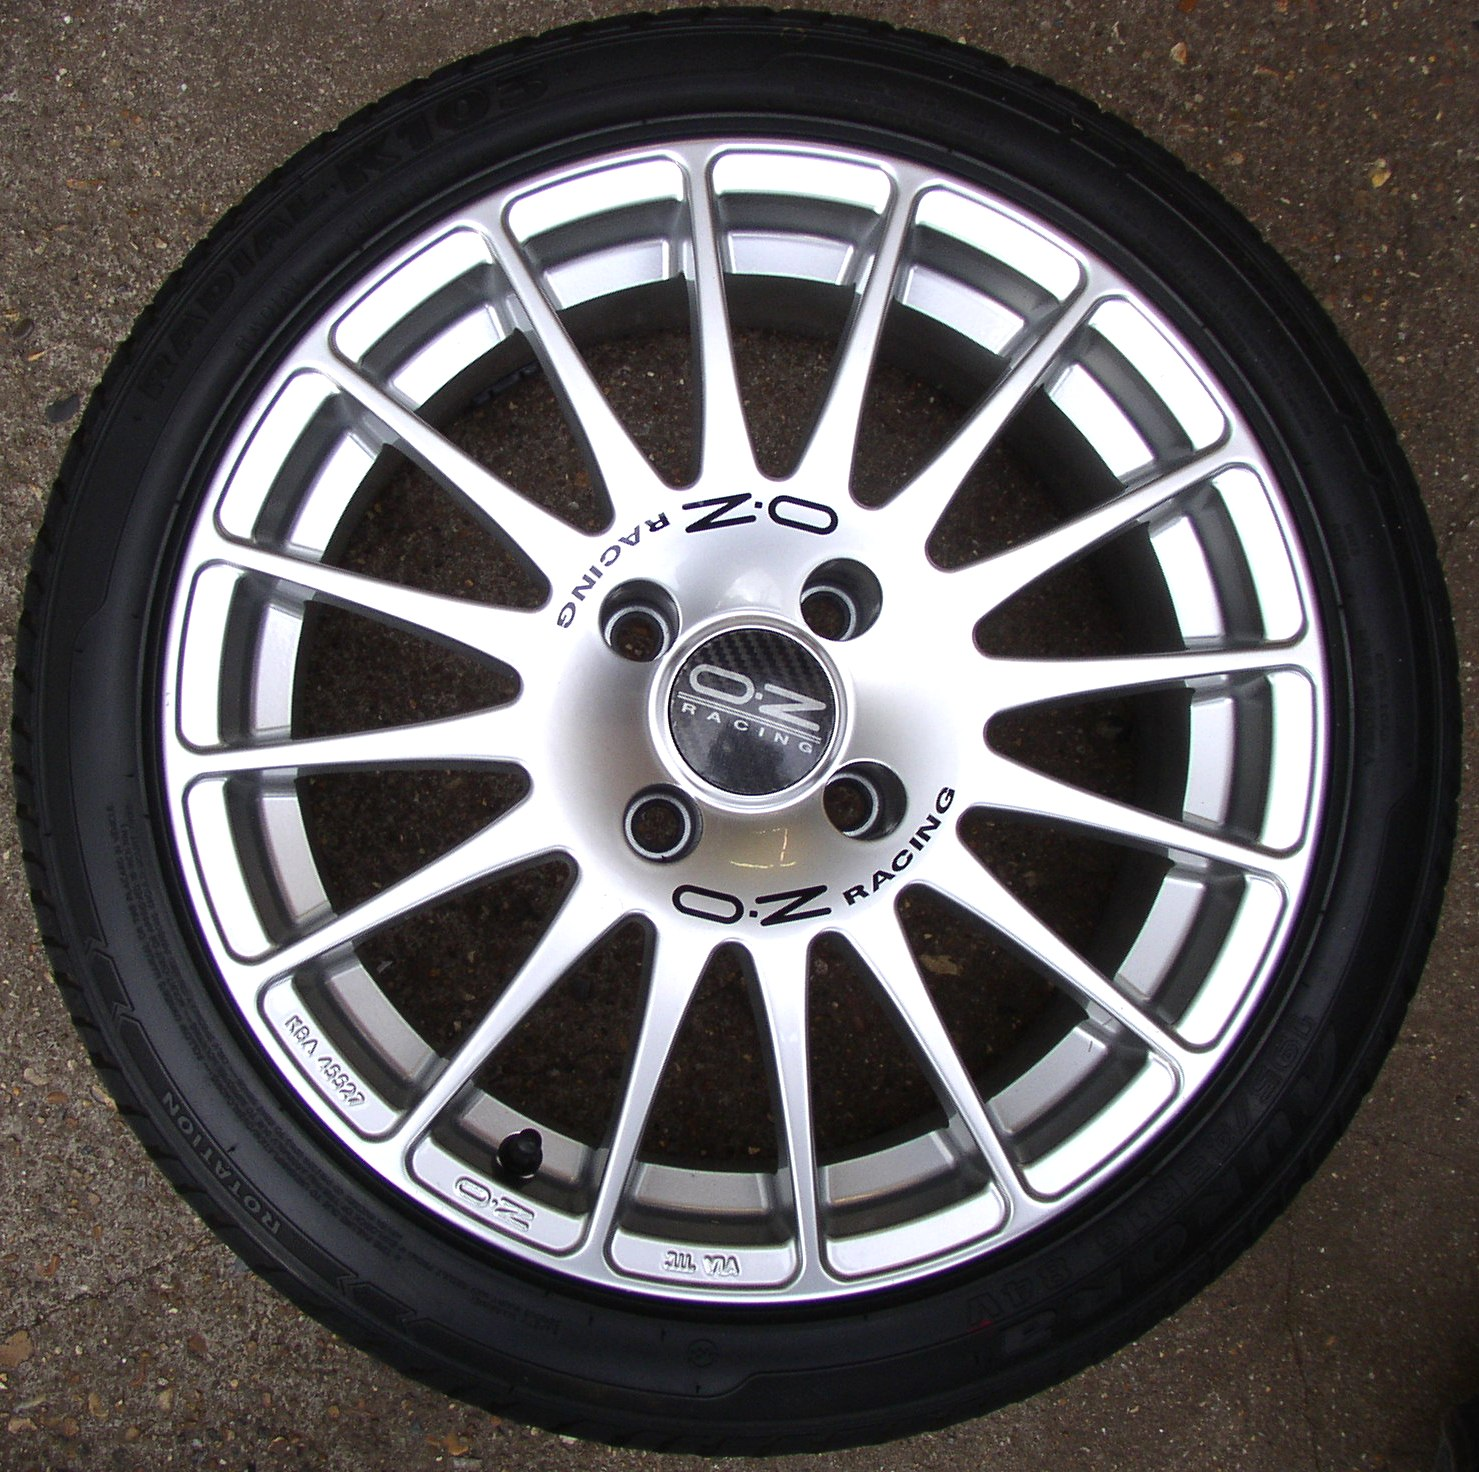 Oz Supertourismo Gt Multispoke Silver Alloy Wheels Jx Xmm Pcd Offset Et Removed From Peugeot Gti But Willl Fit Many  Stud Peugeots